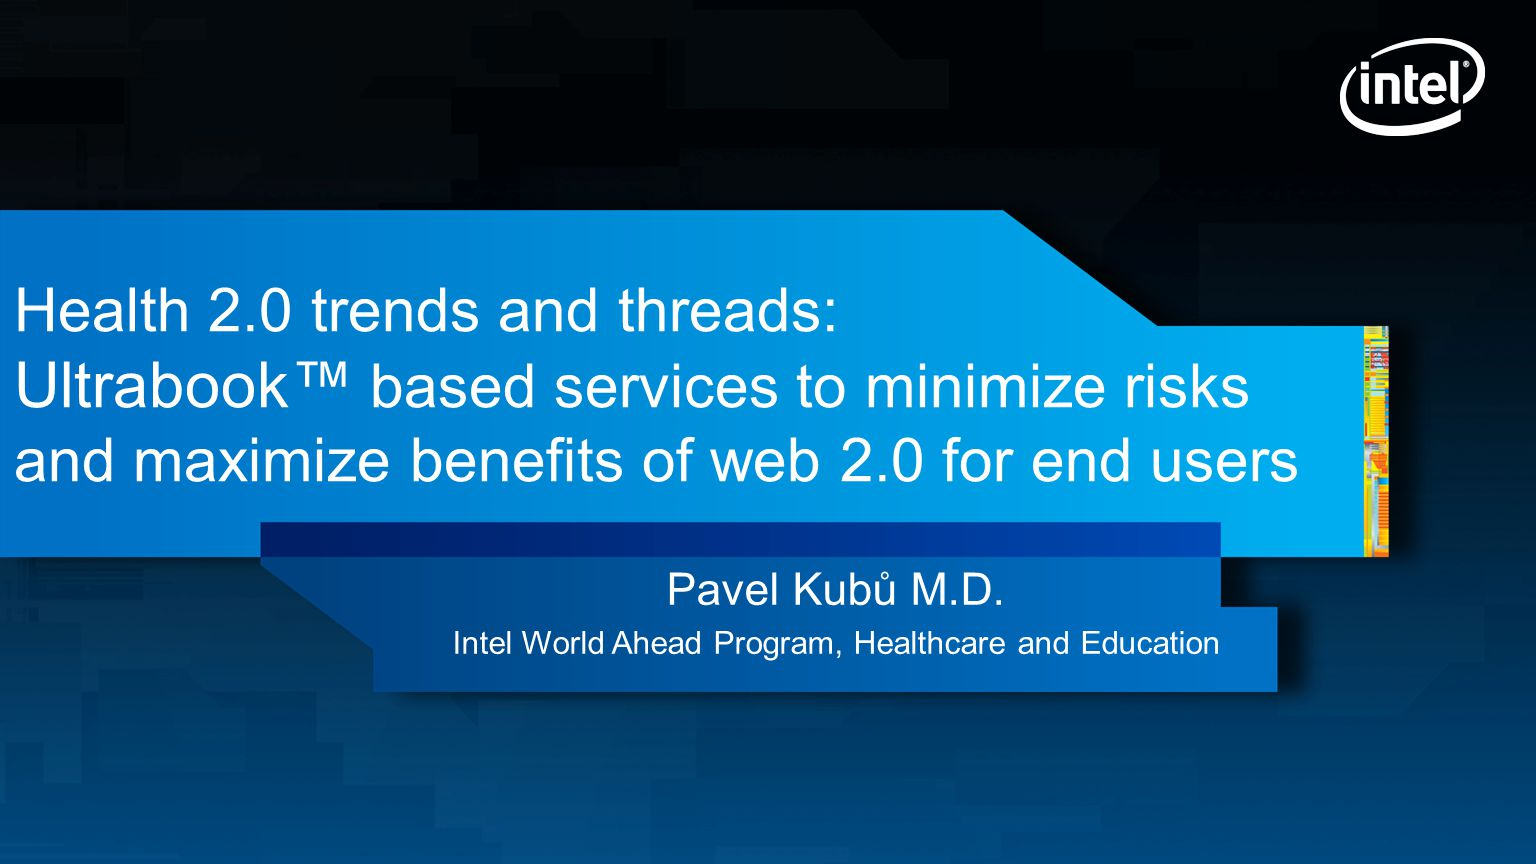 Health 2.0 trends and threads: Ultrabook™ based services to minimize risks and maximize benefits of web 2.0 for end users Pavel Kubů M.D.